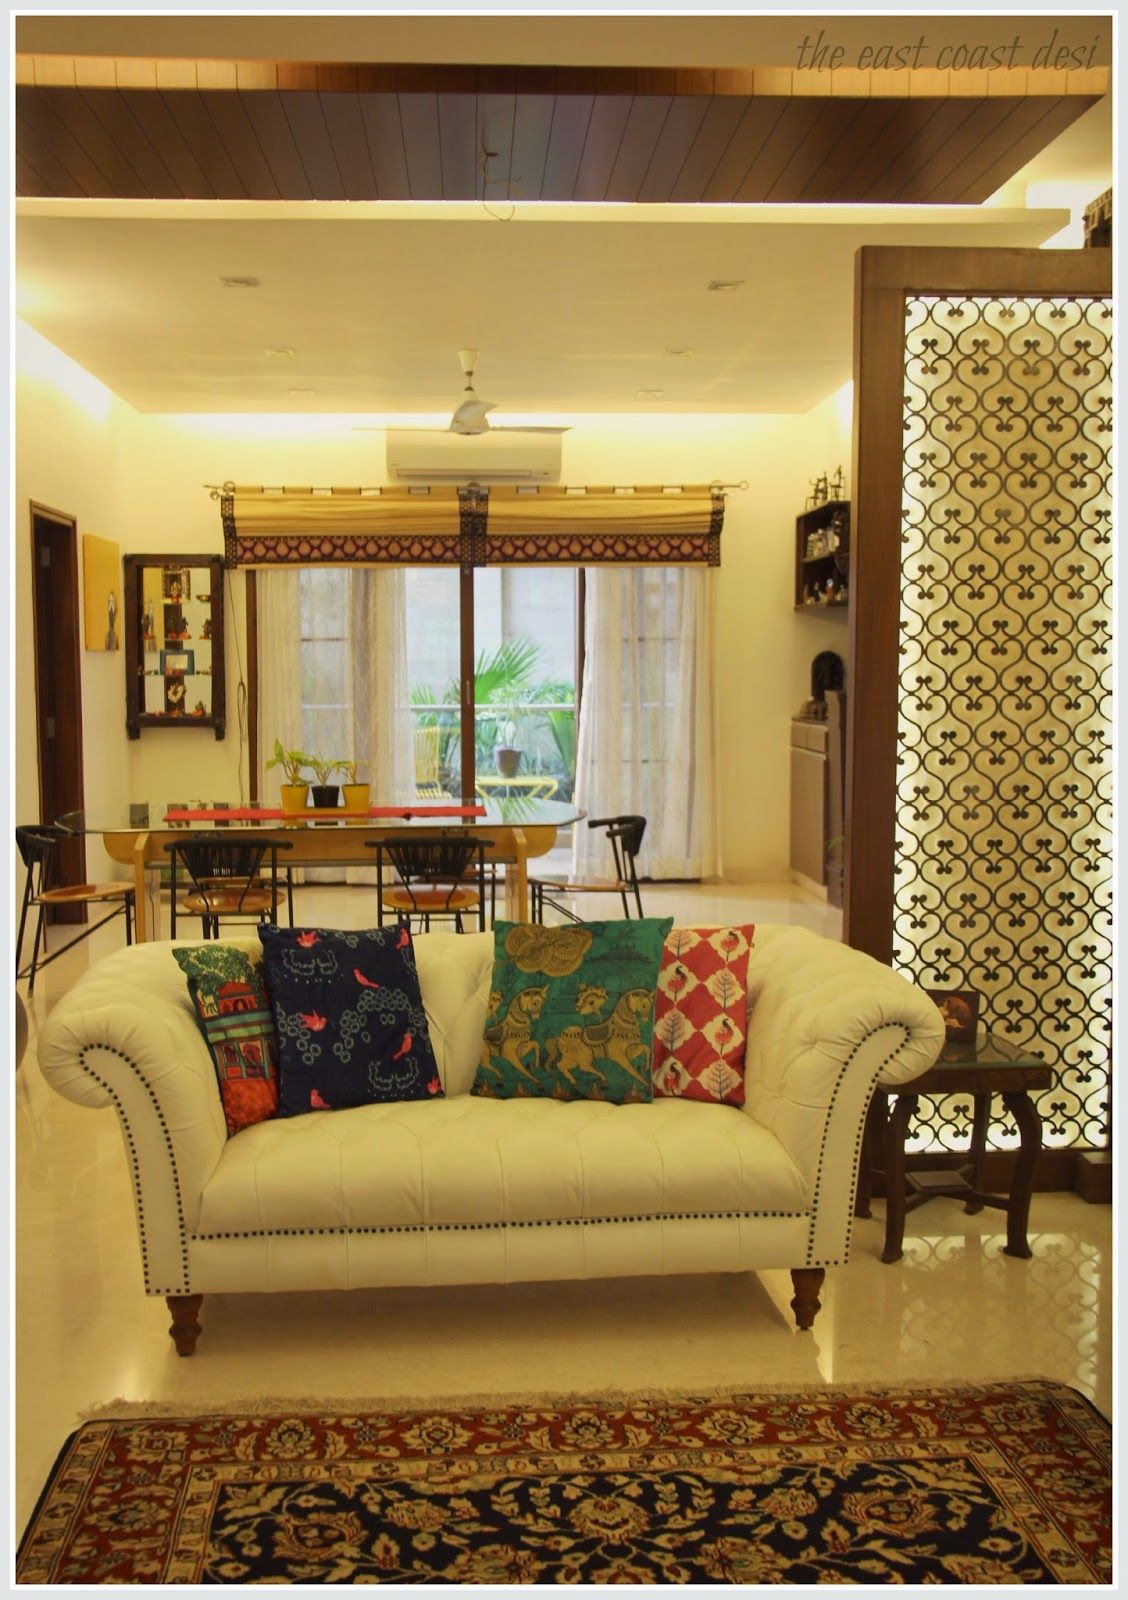 Indian Home Decoration The East Coast Desi Masterful Mixing Home Tour Decor